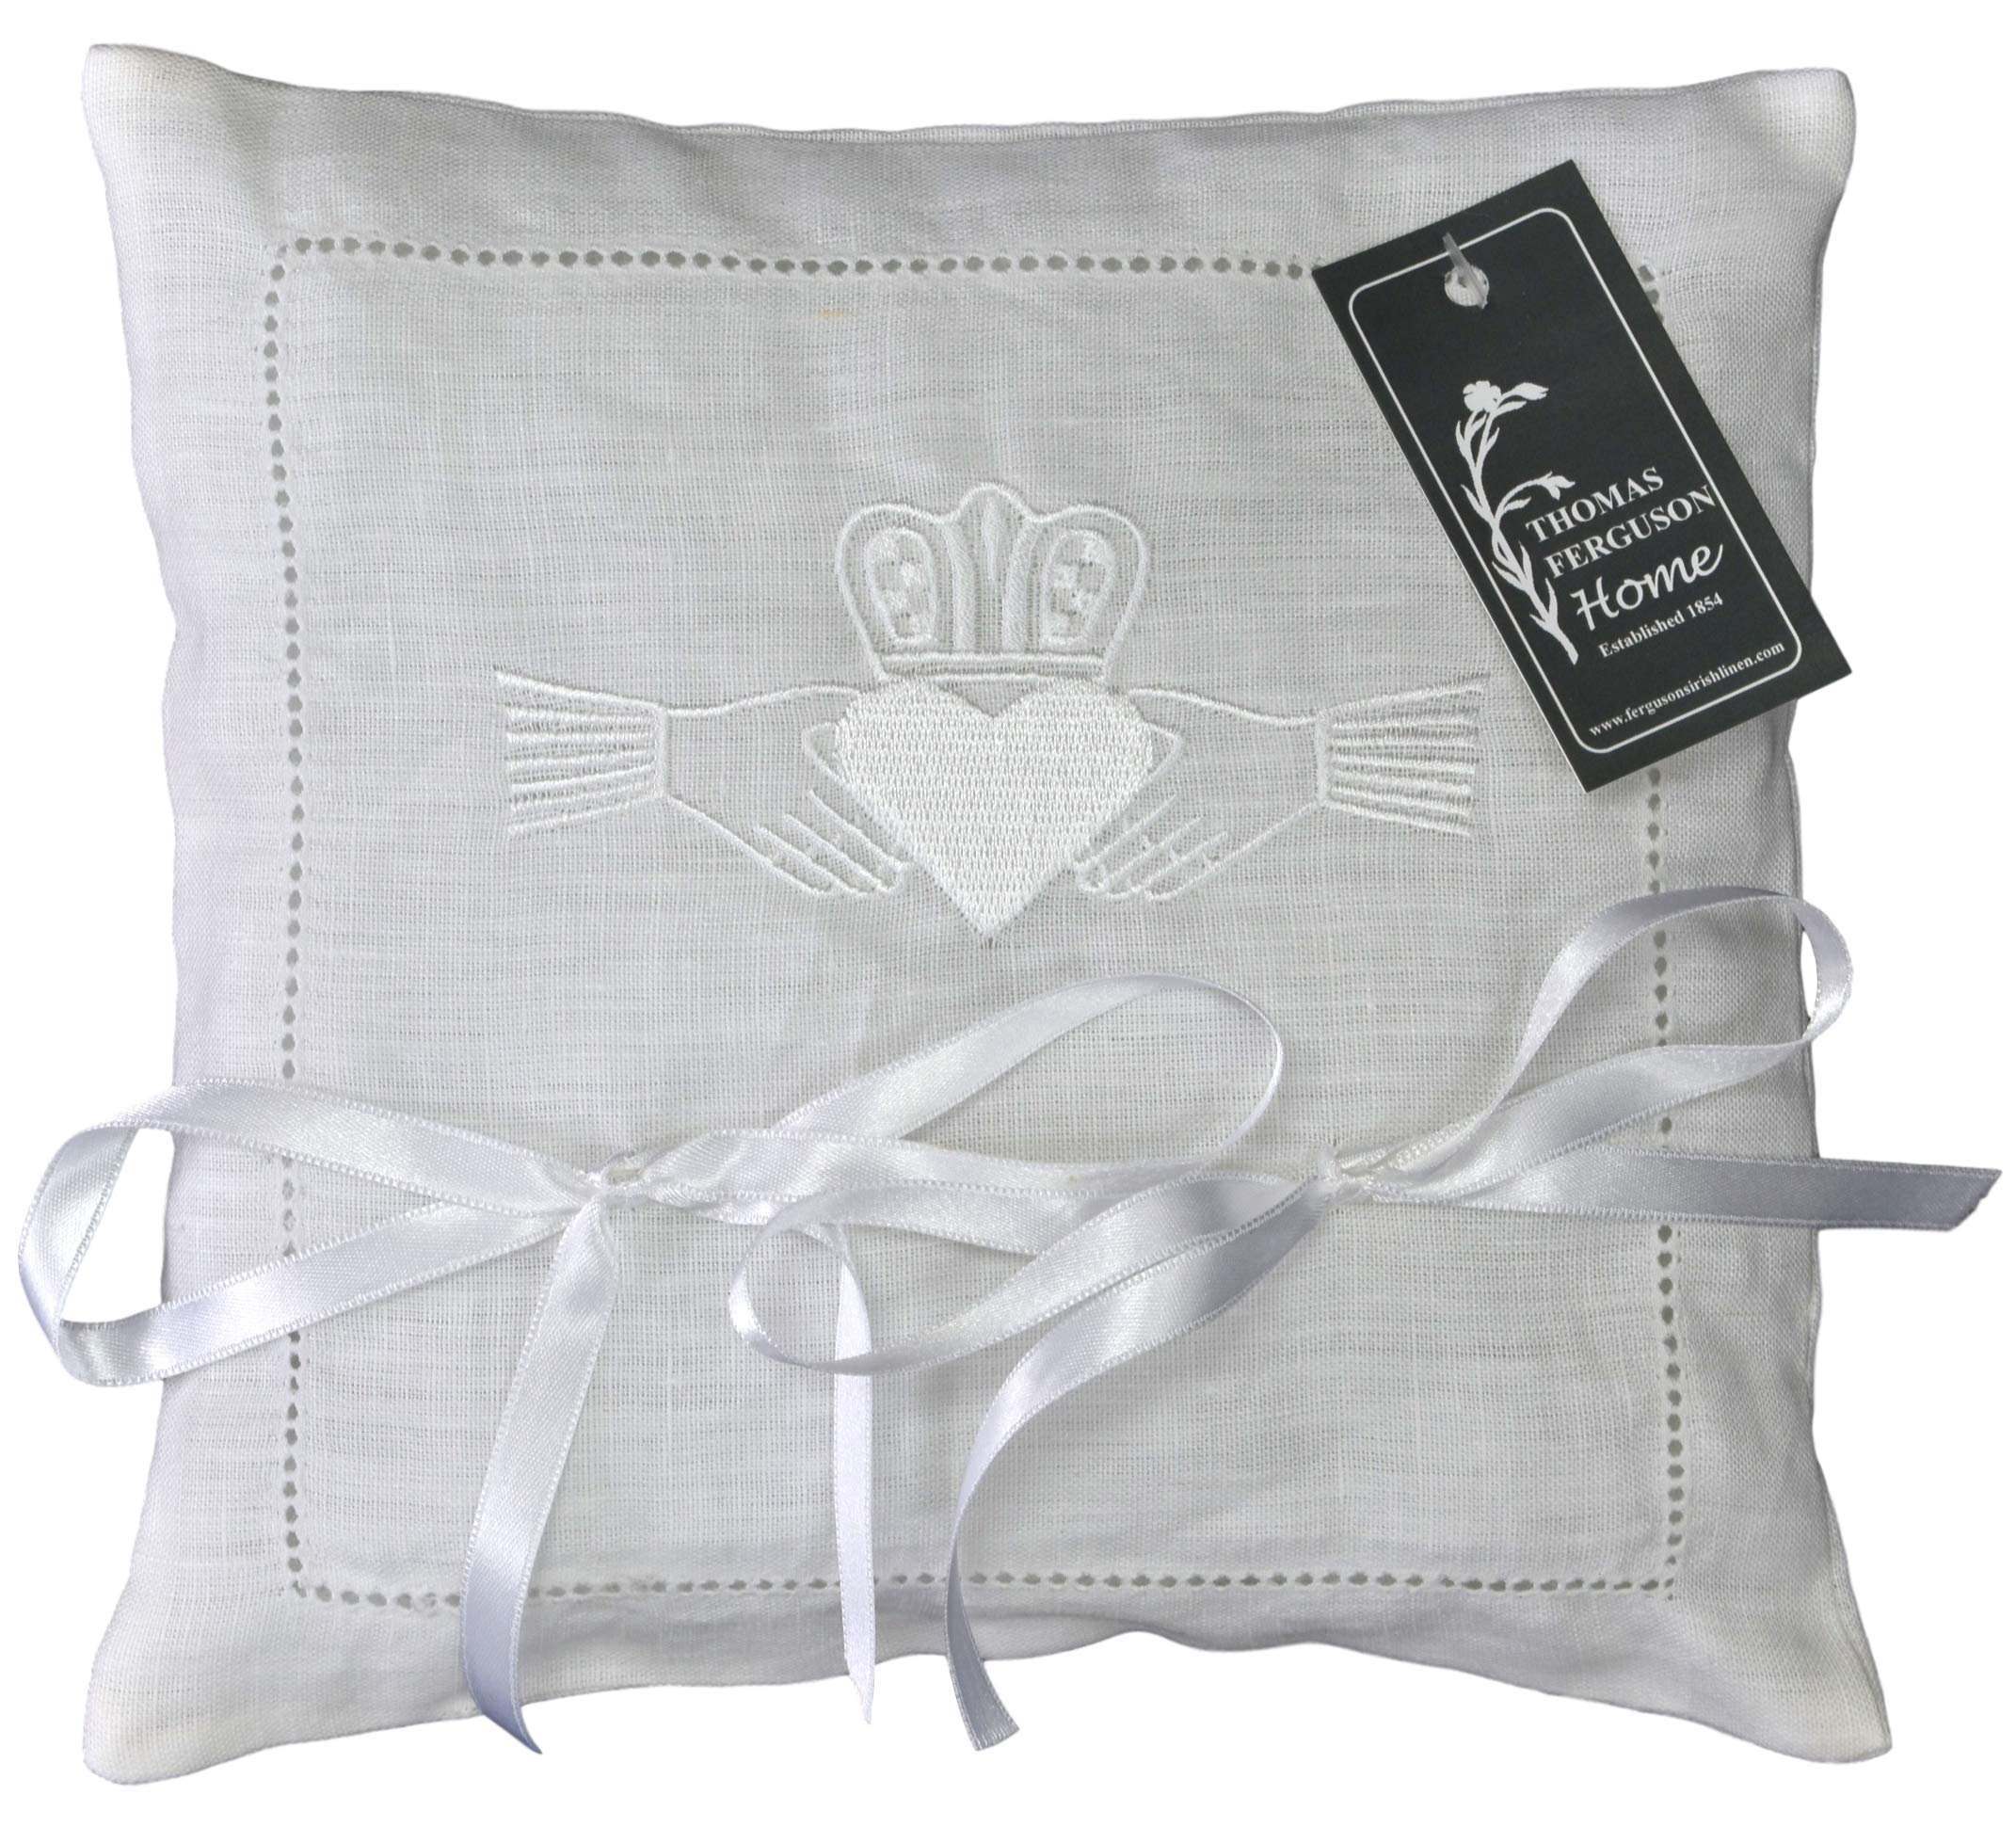 Thomas Ferguson Irish Linen - Wedding Ring Cushion with Embroidered Claddagh Heart Design, White by Thomas Ferguson